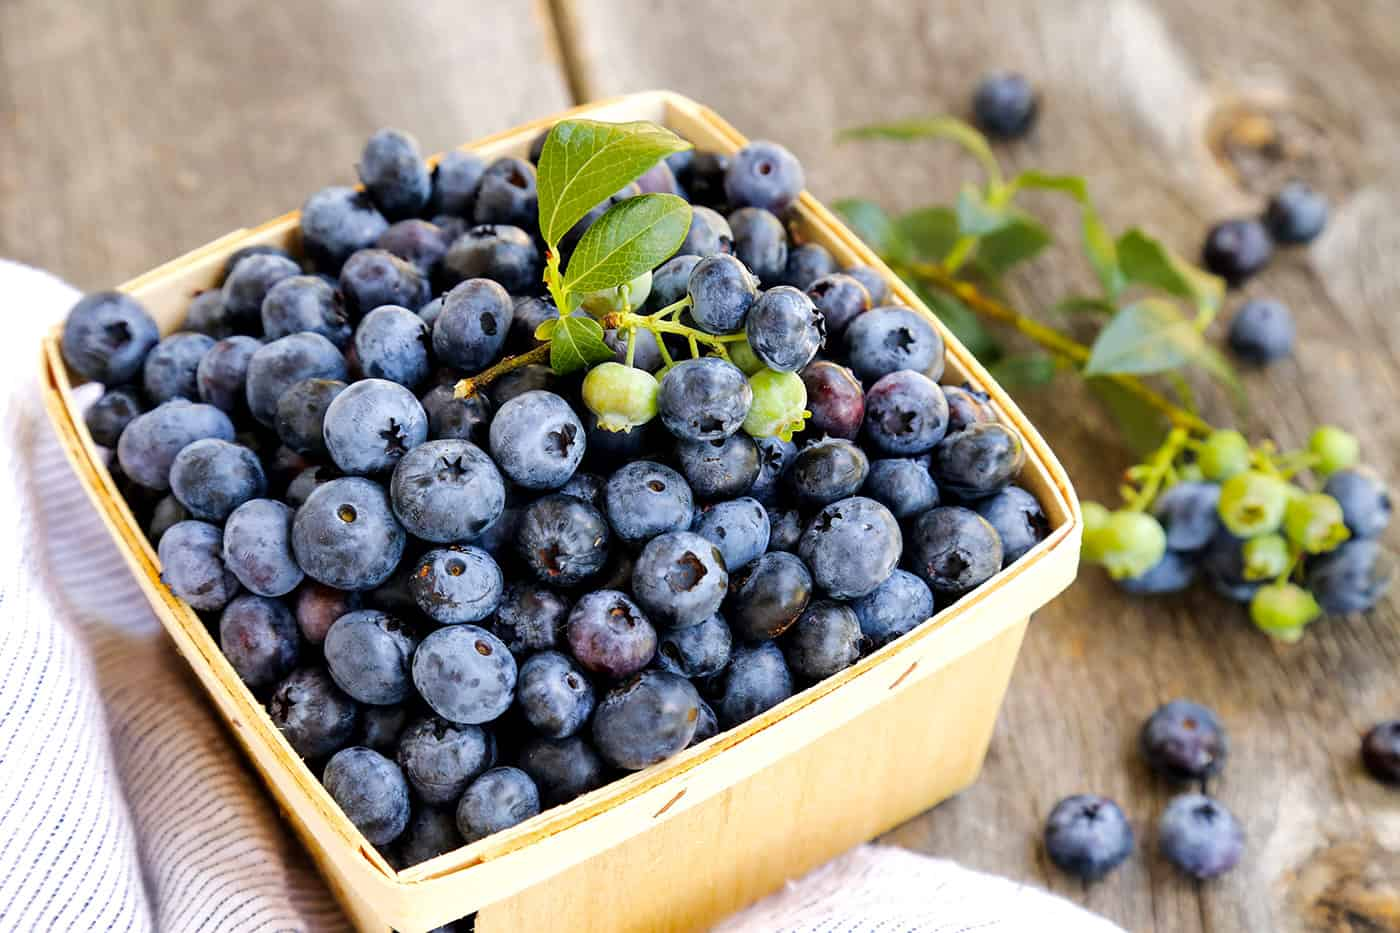 A pint of freshly picked blueberries